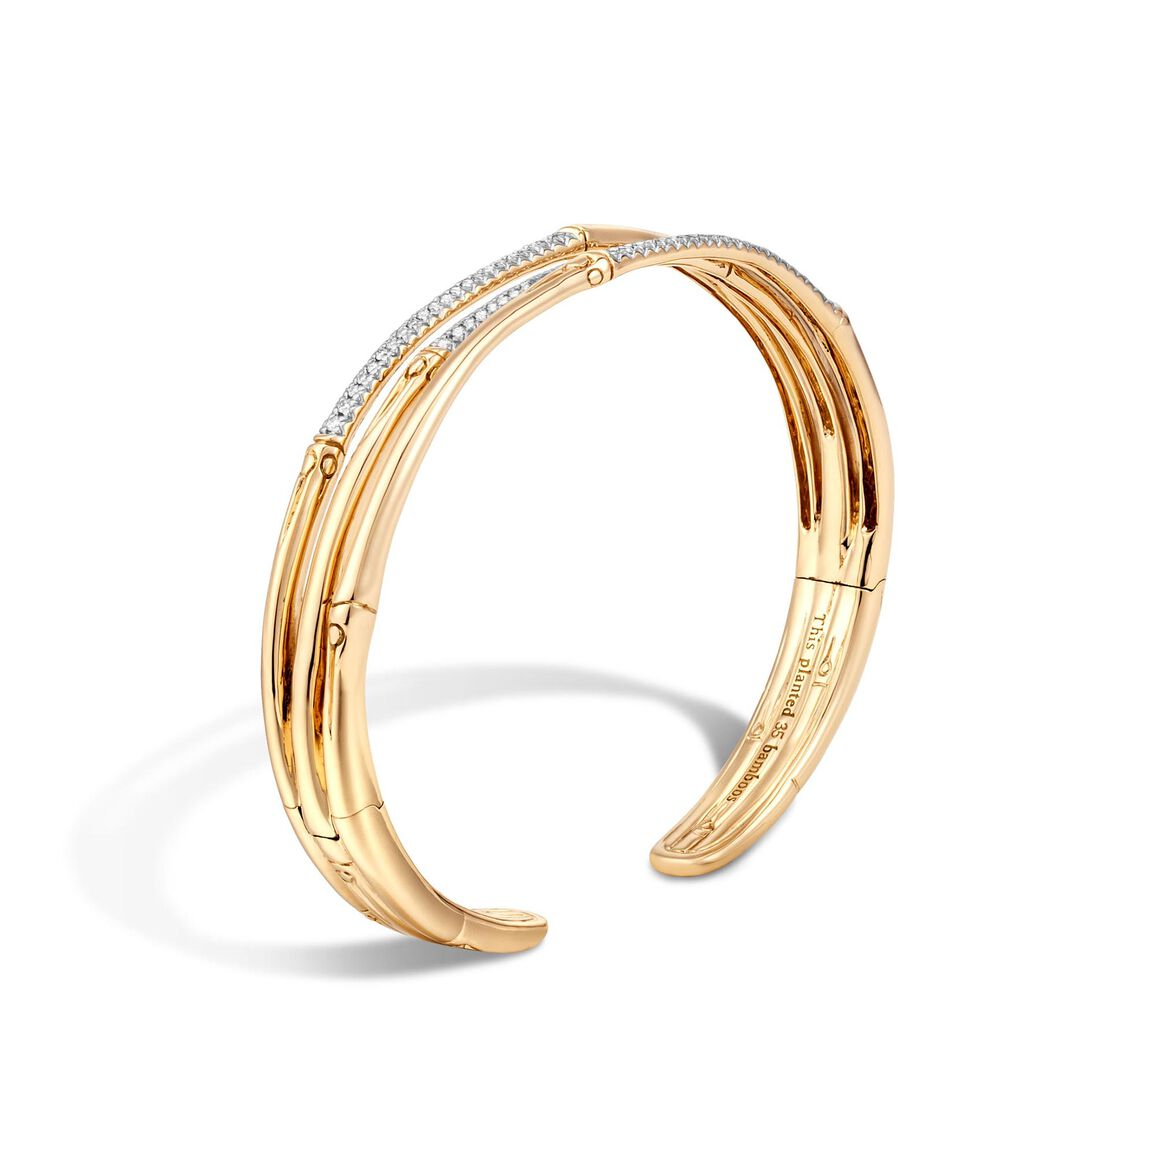 Bamboo 10MM Cuff in 18K Gold with Diamonds